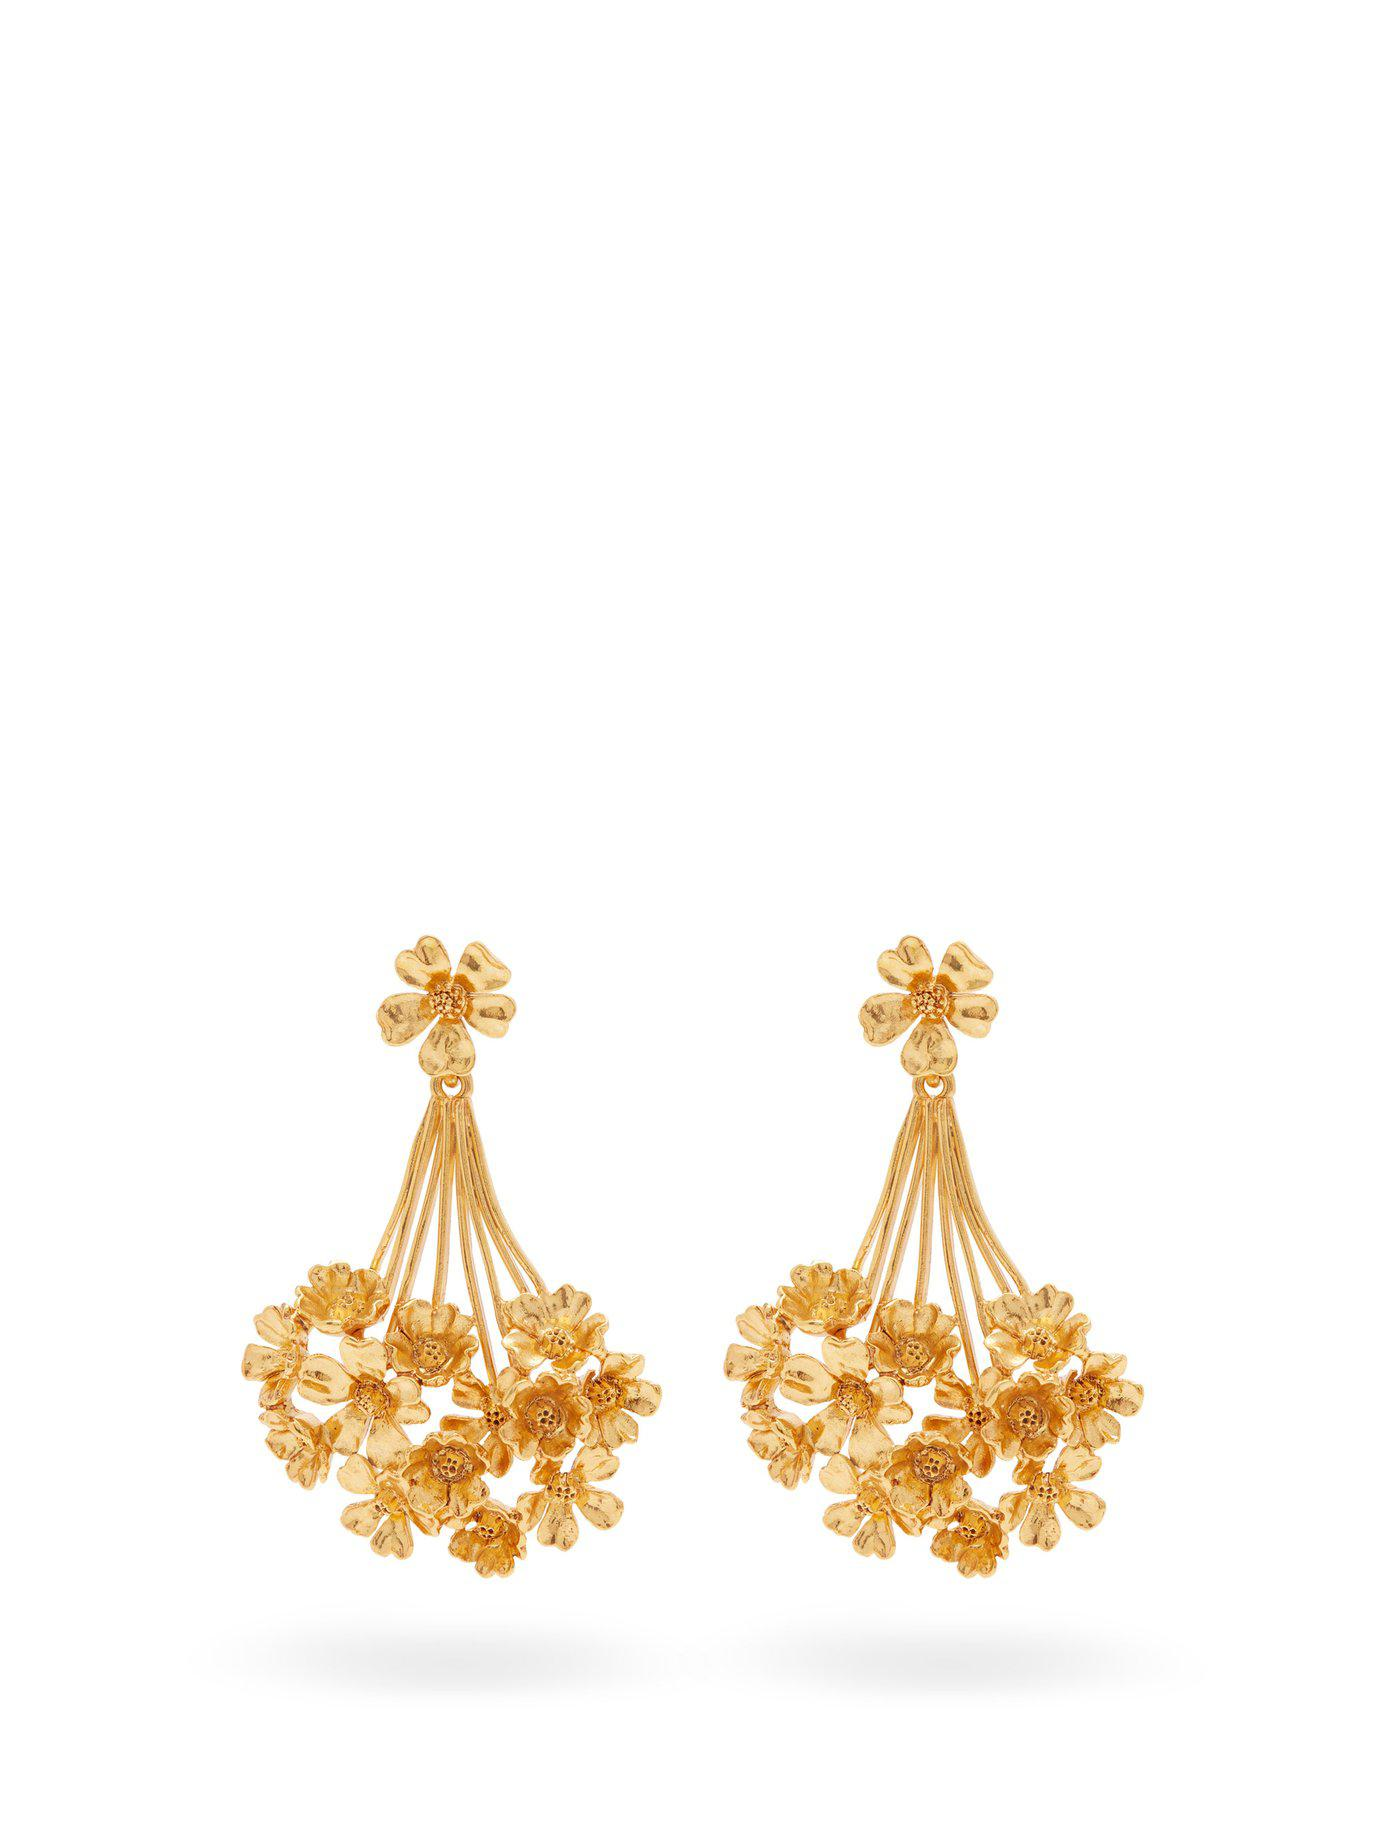 8bf40013d051 Lyst - Oscar de la Renta Geranium Drop Earrings in Metallic